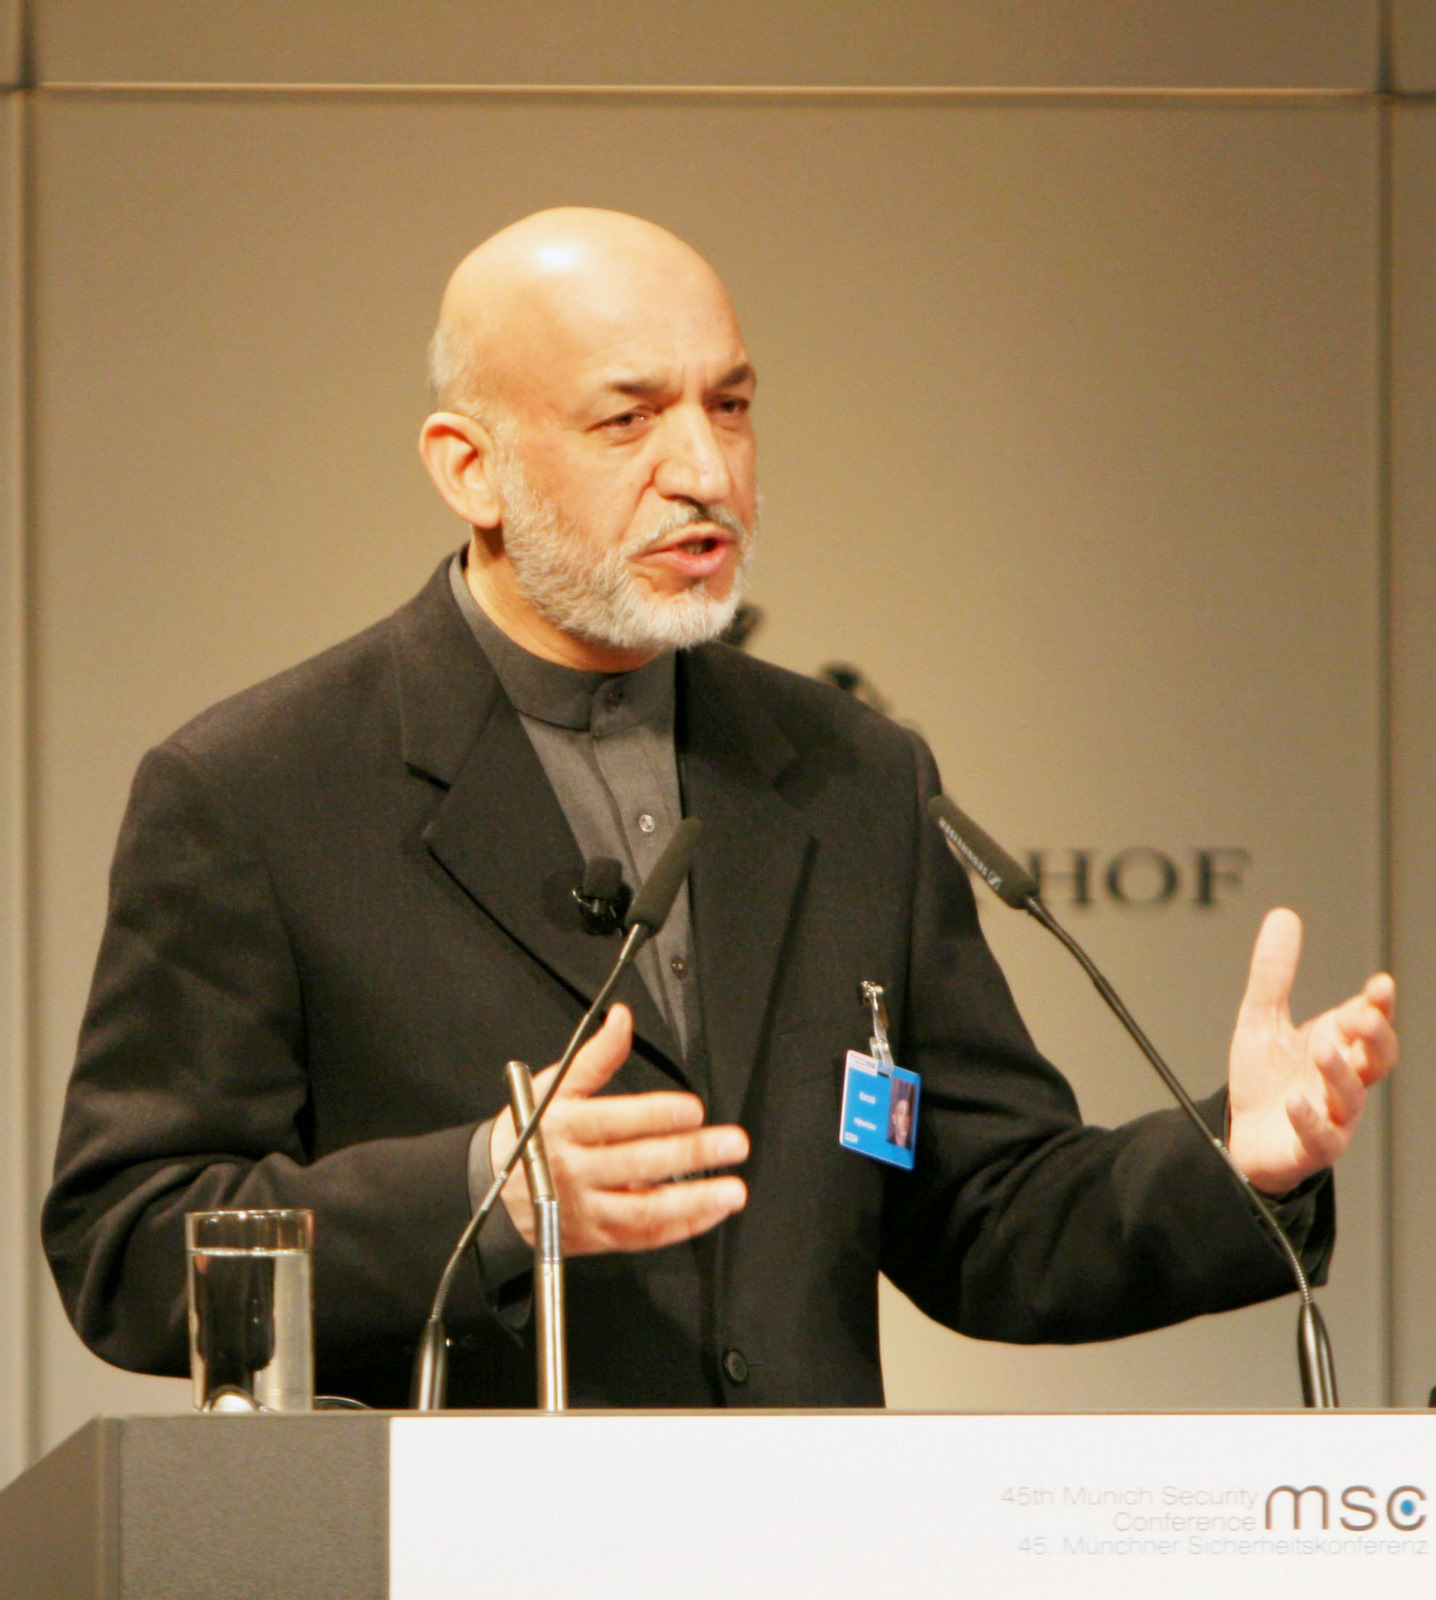 hamid karzai without hat